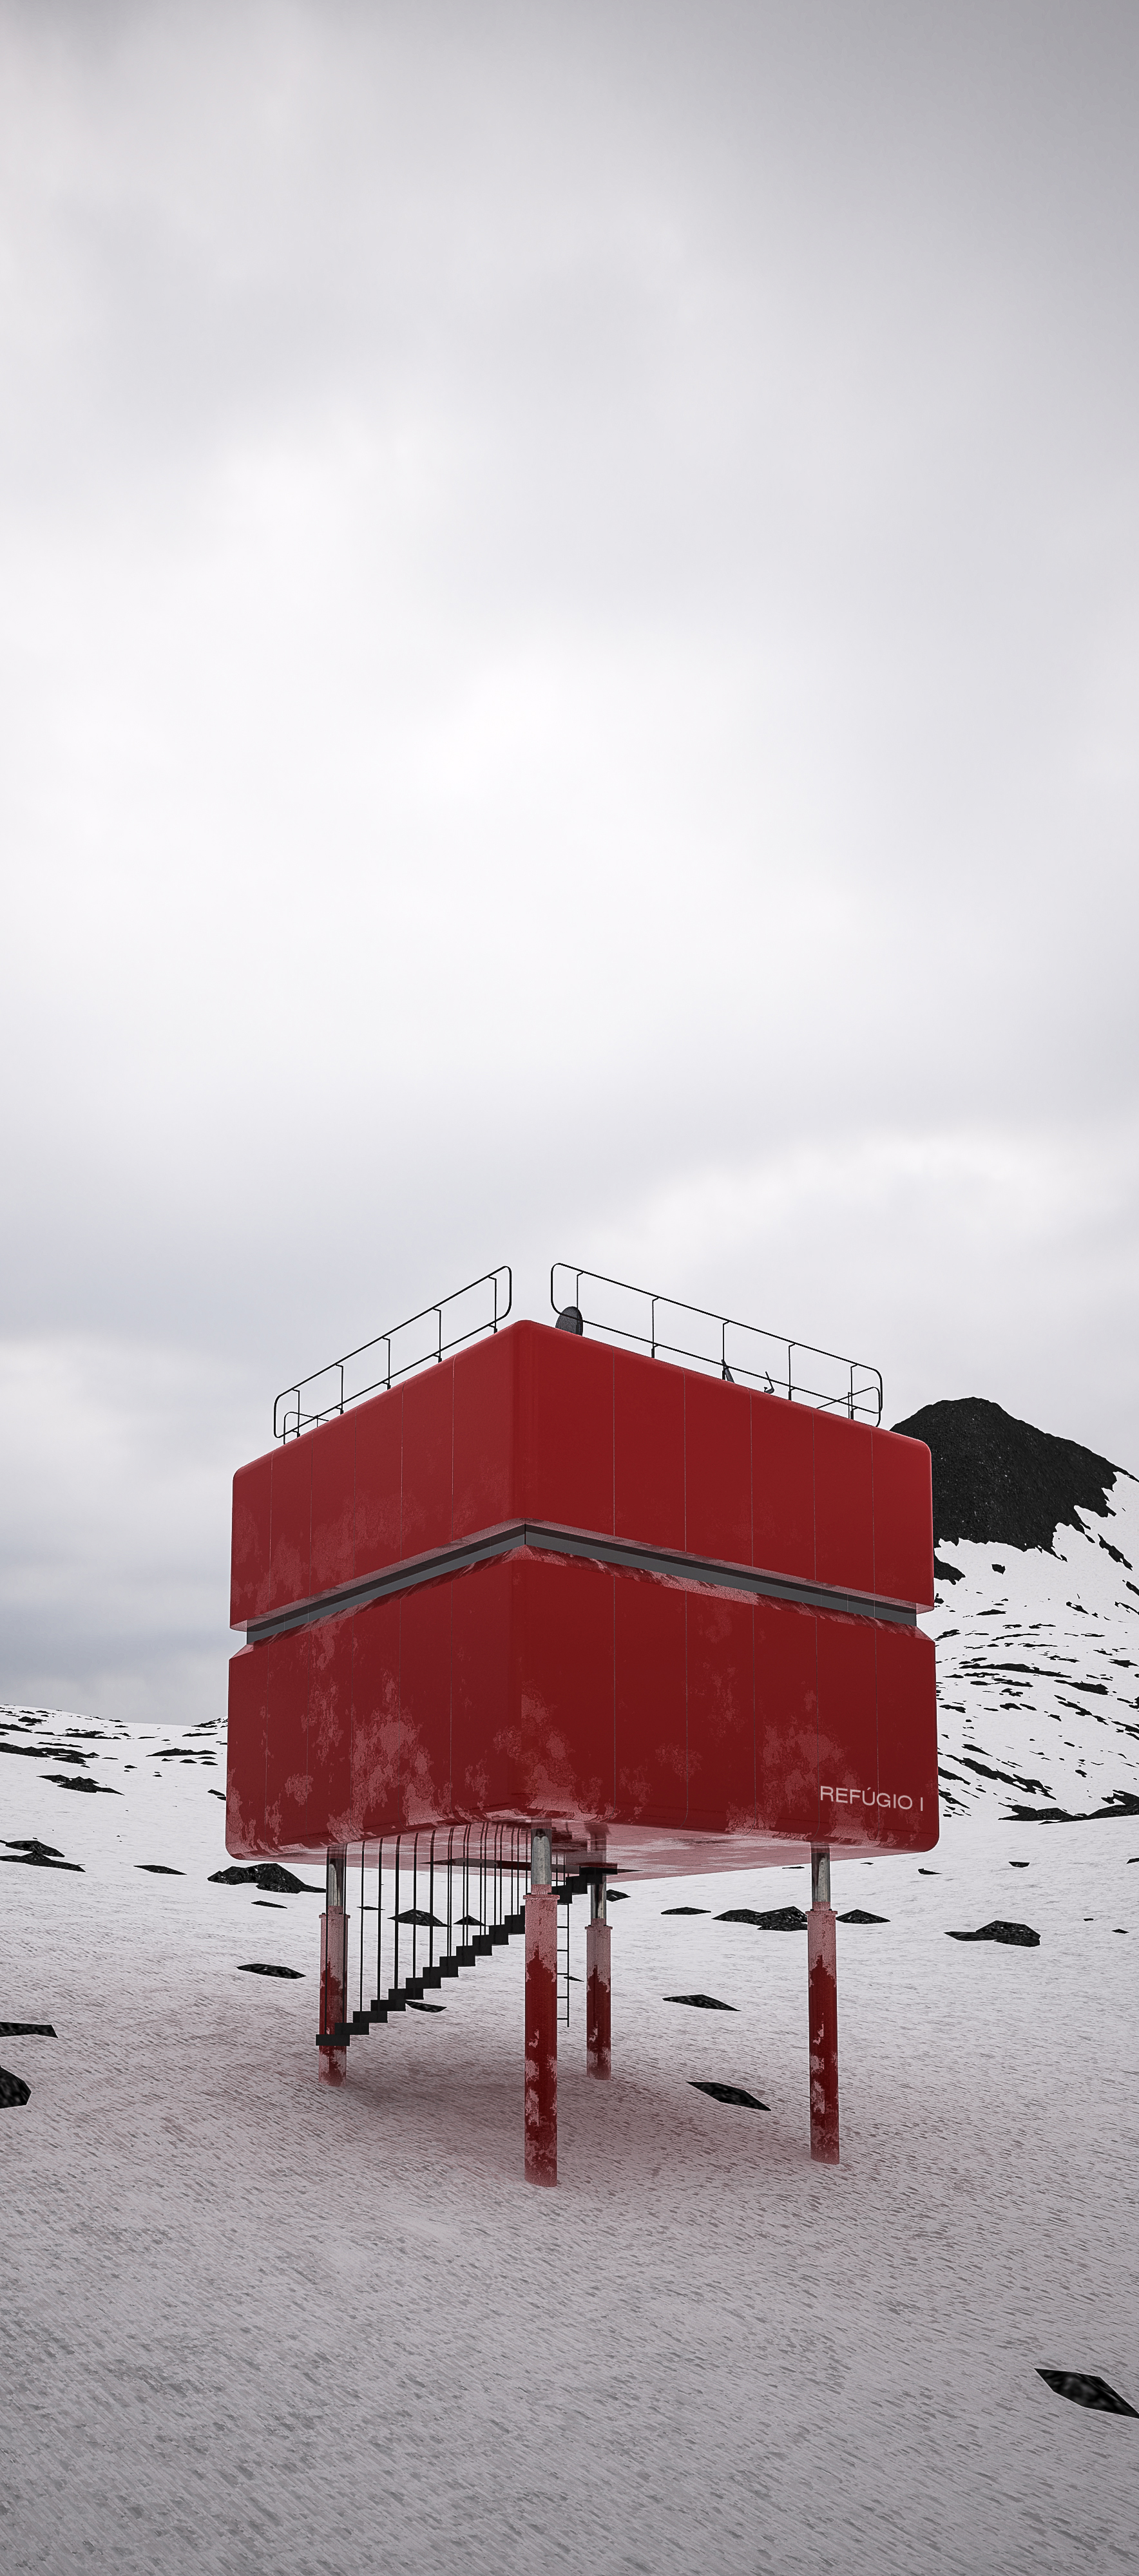 Comandante Ferraz  Brazilian Research Base , Keller Peninsula, Antarctica   learn more →